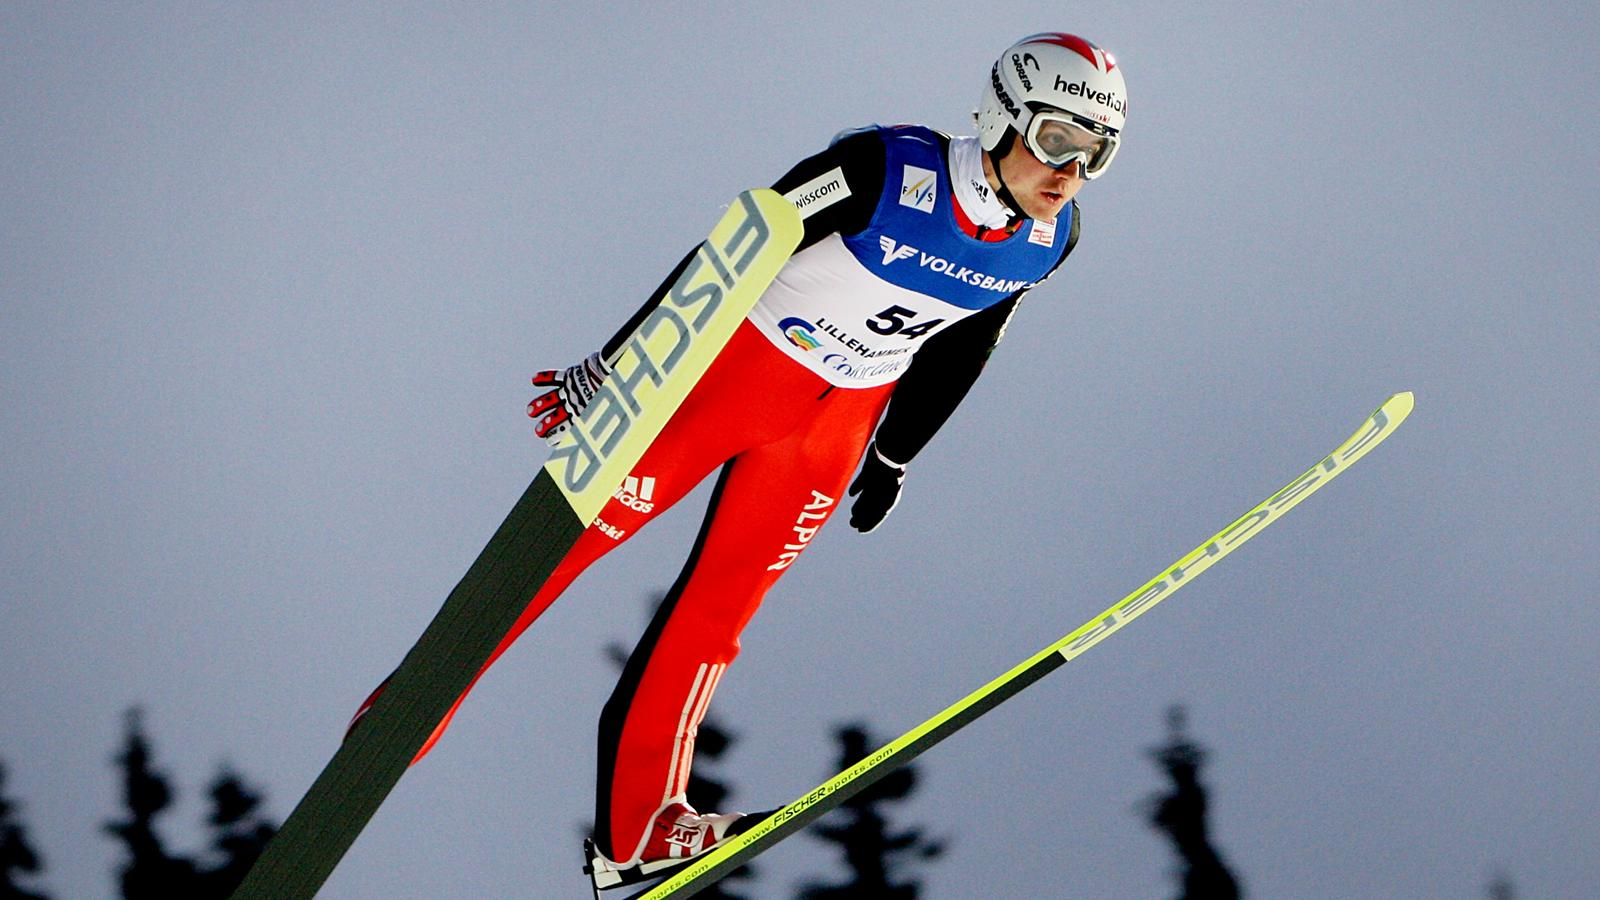 Simon Ammann of Switzerland skis during the Ski-jumping World Cup ...